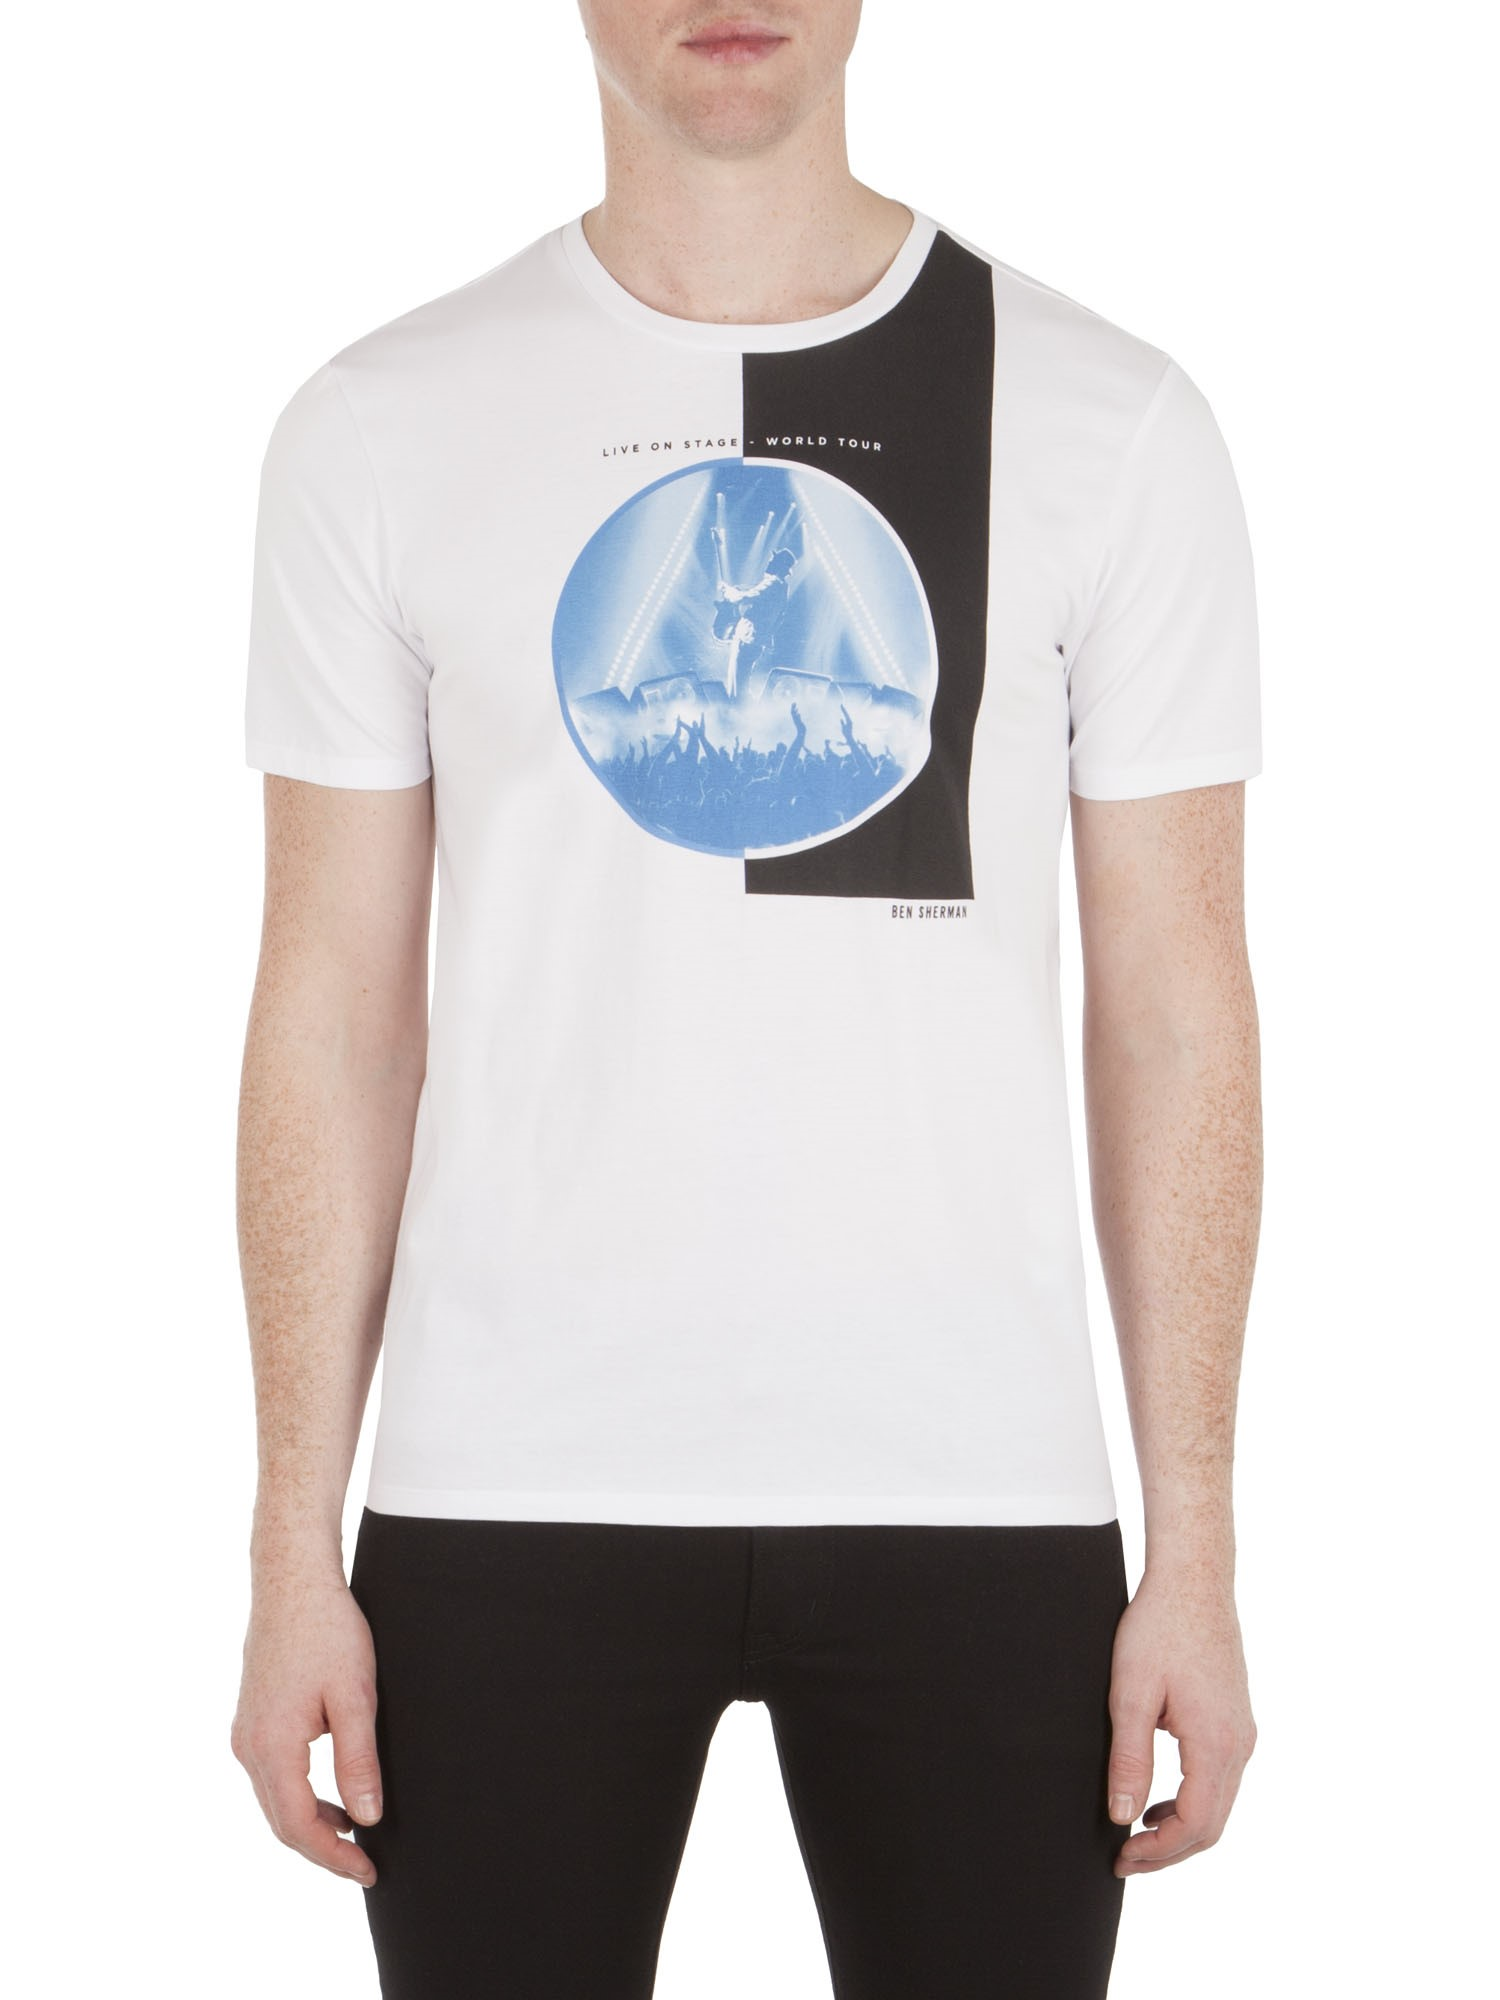 Ben Sherman Bright White Live On Stage T-Shirt